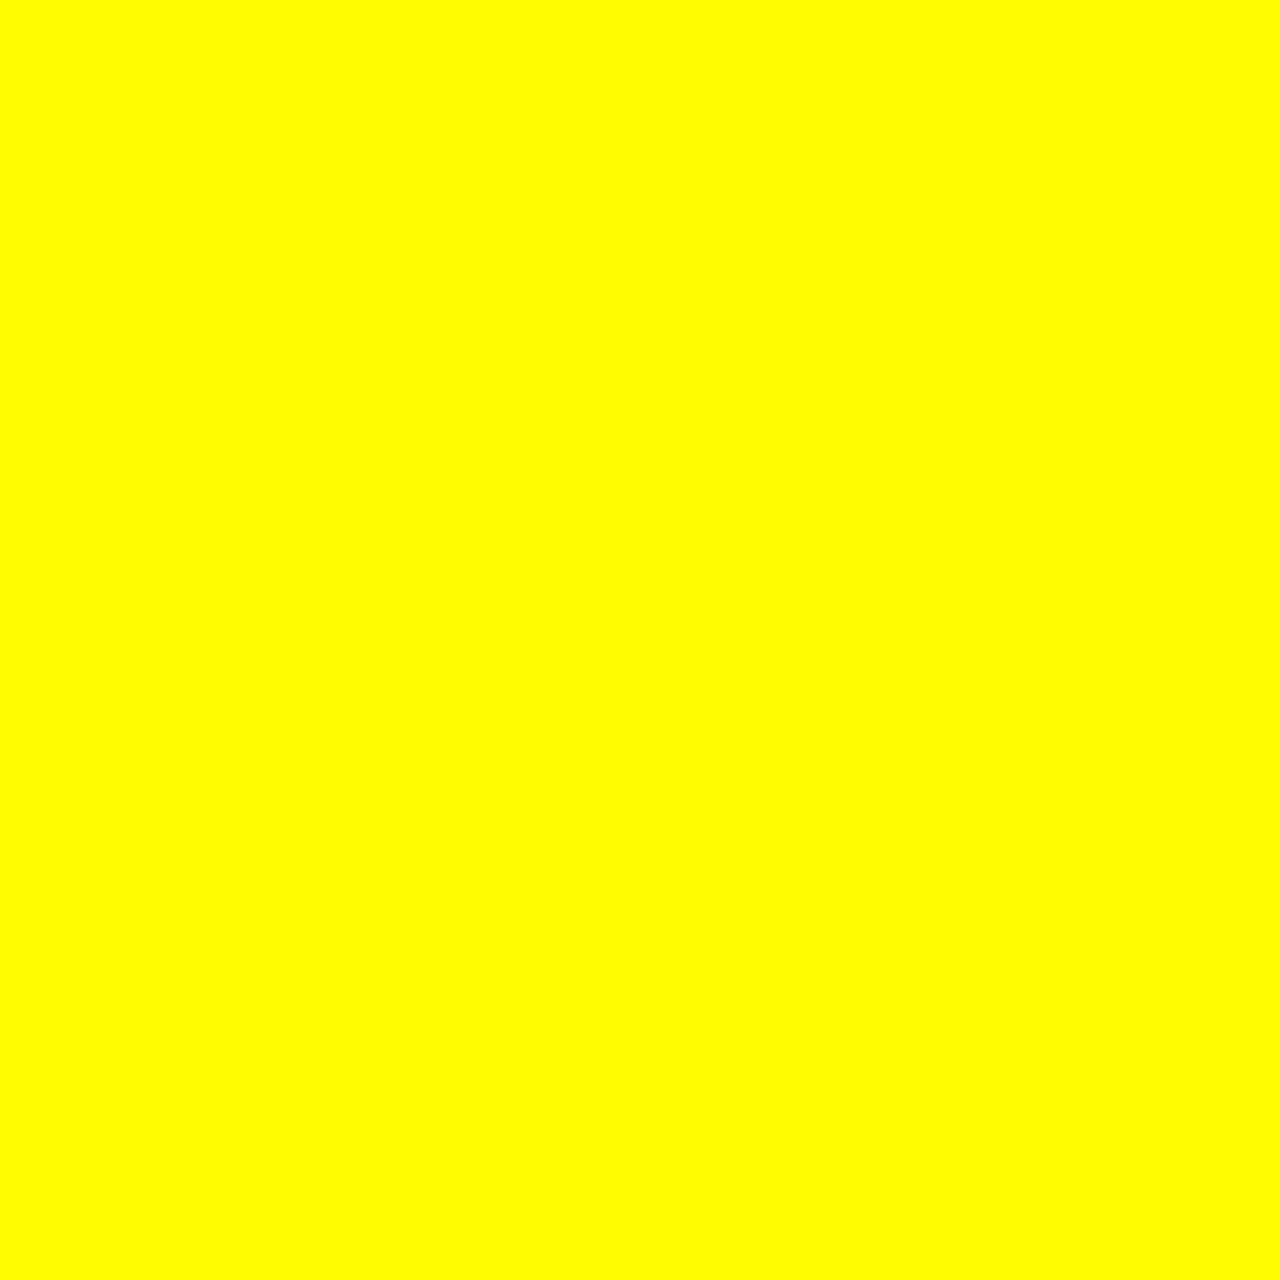 #0010 Rosco Gels Roscolux Medium Yellow, 20x24""